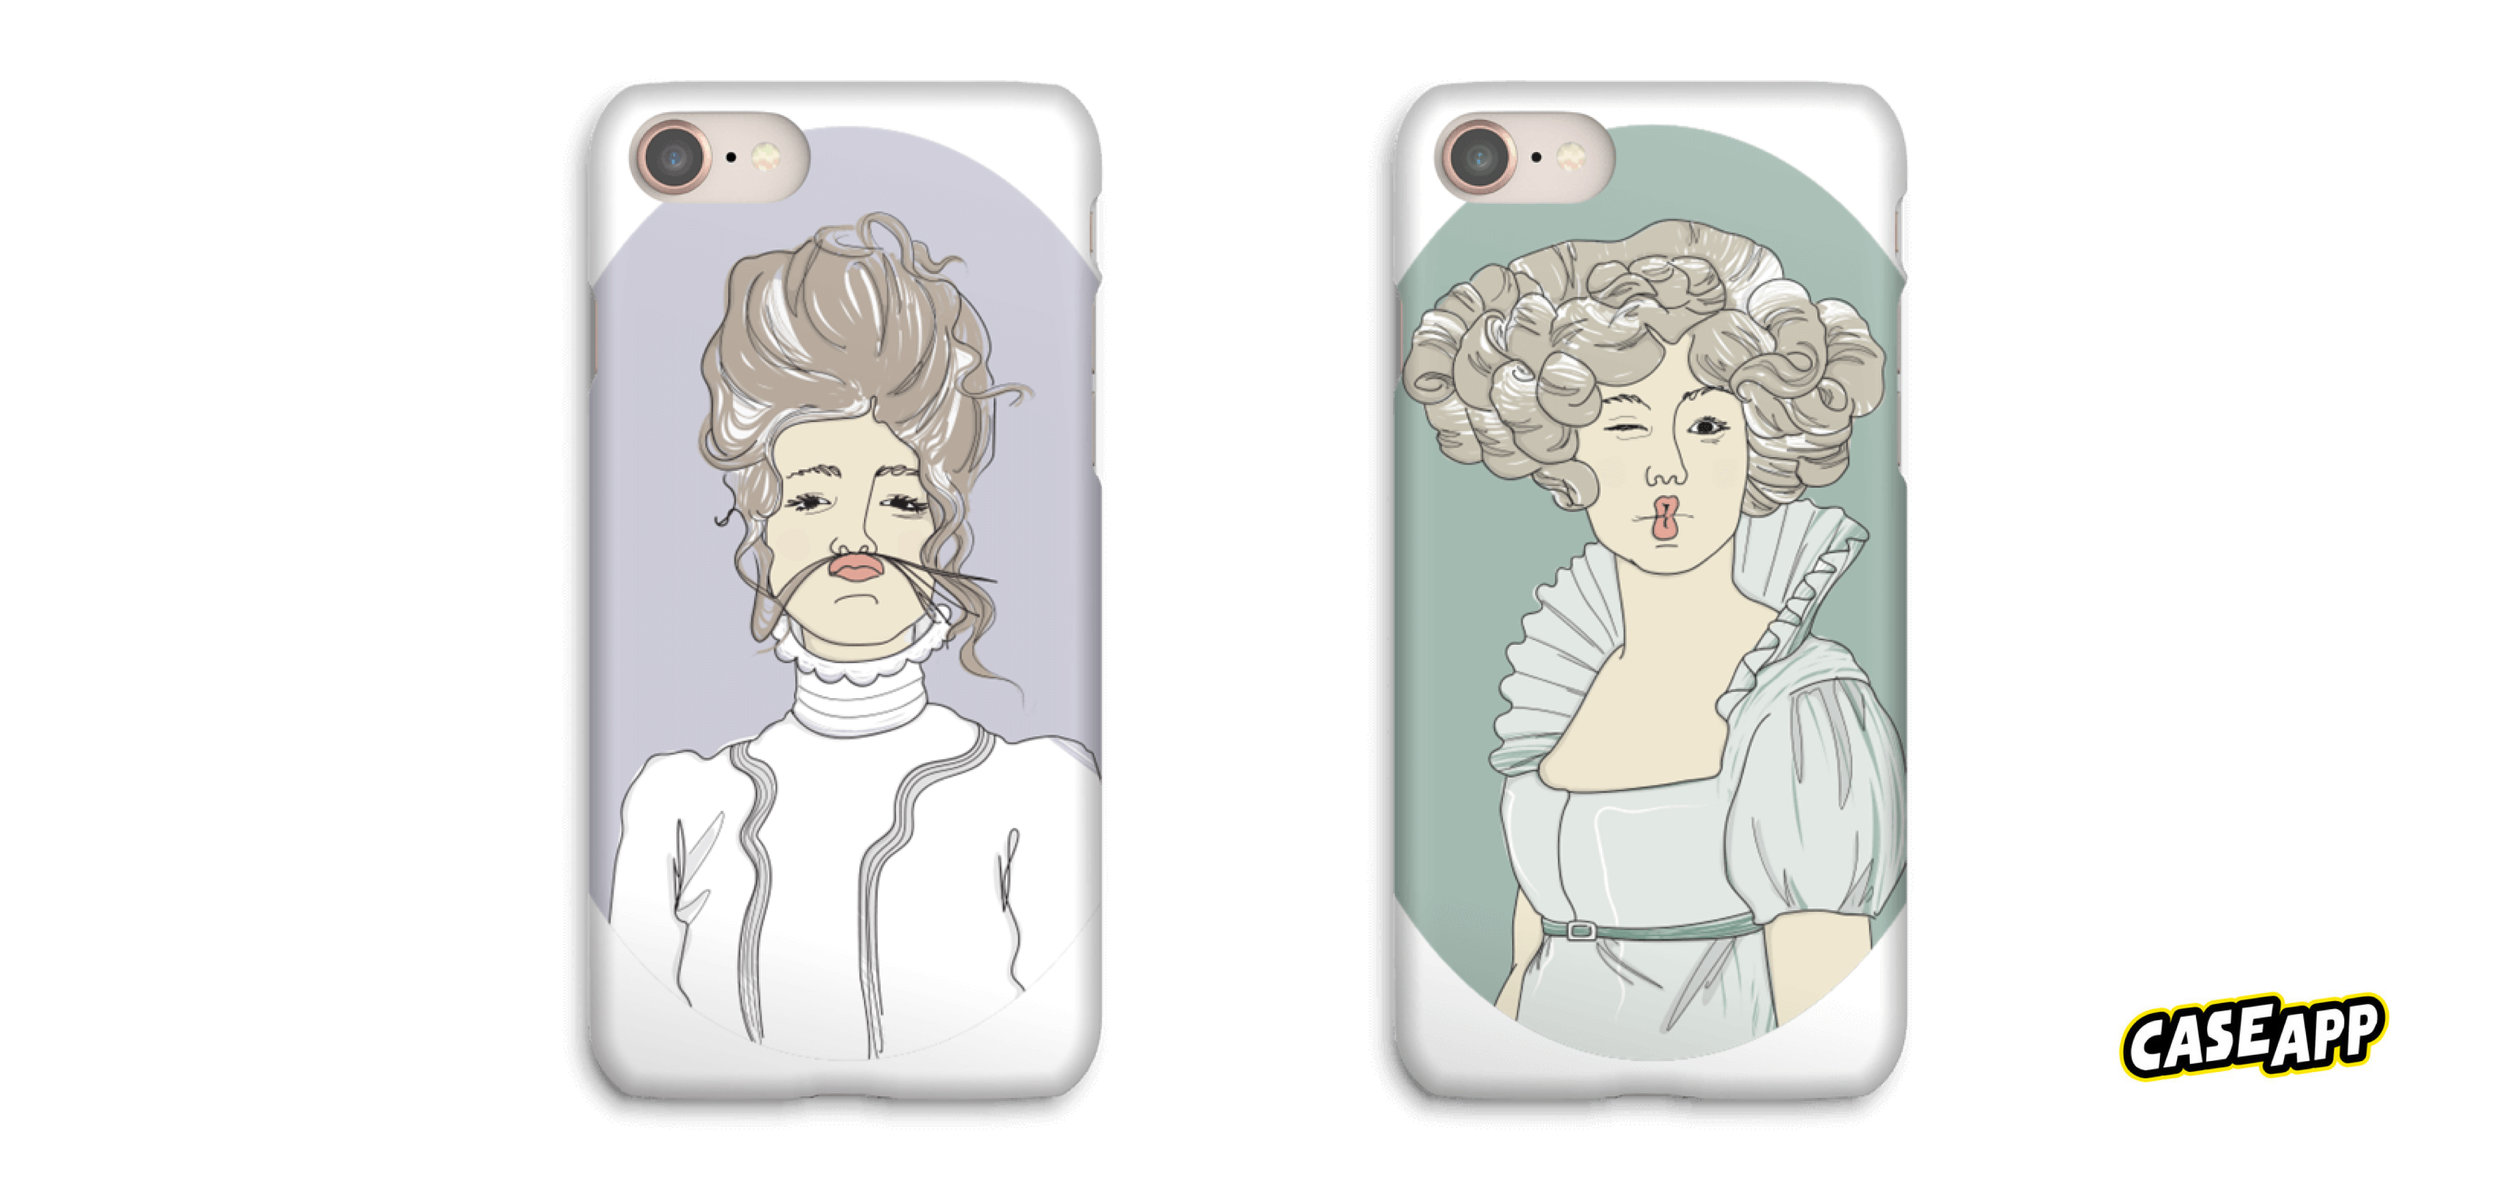 christina-heitmann-illustration-yolo-mobile-case.jpg